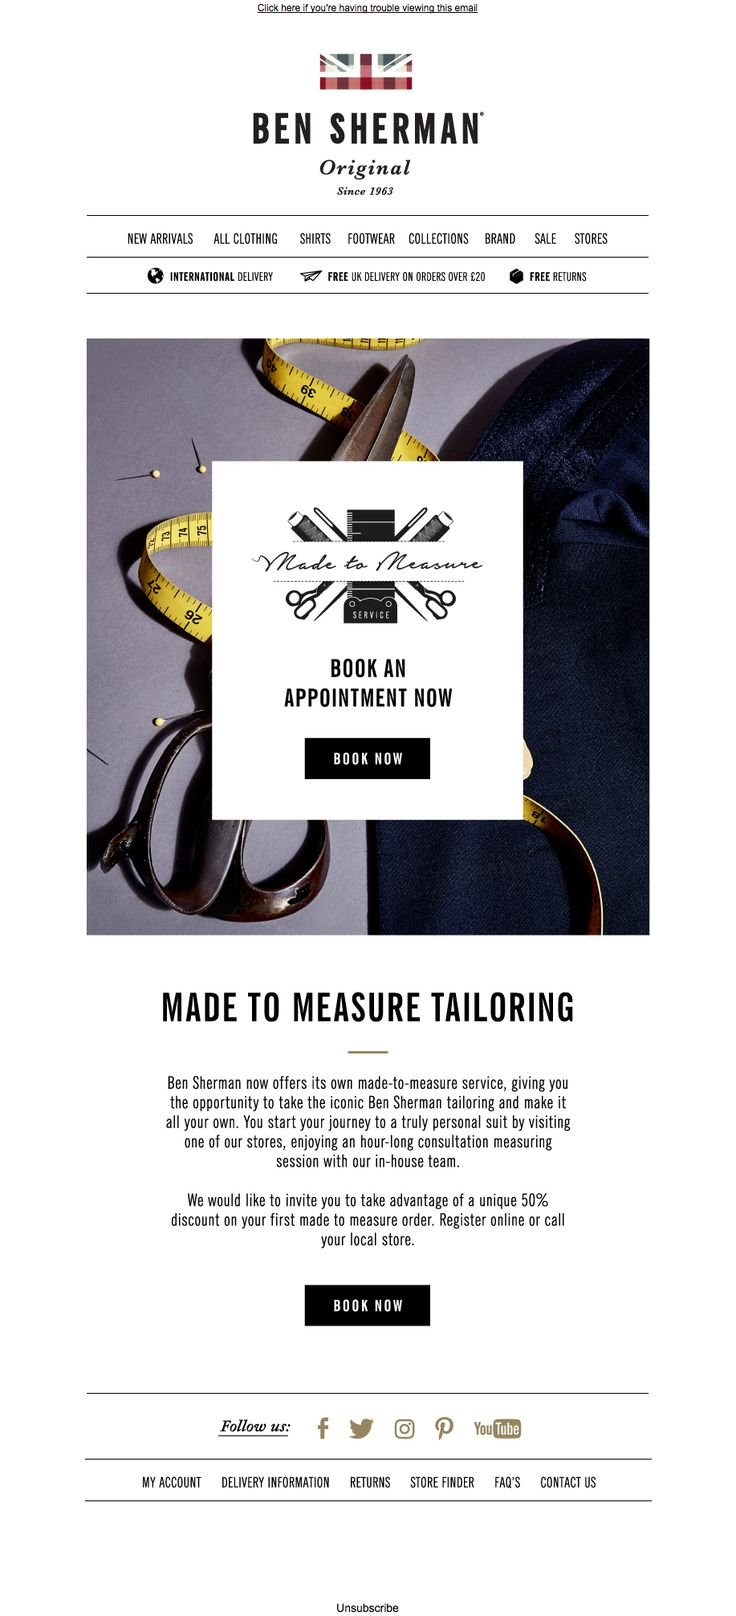 #newsletter Ben Sherman 06.2017 50% off your first made to measure suit order